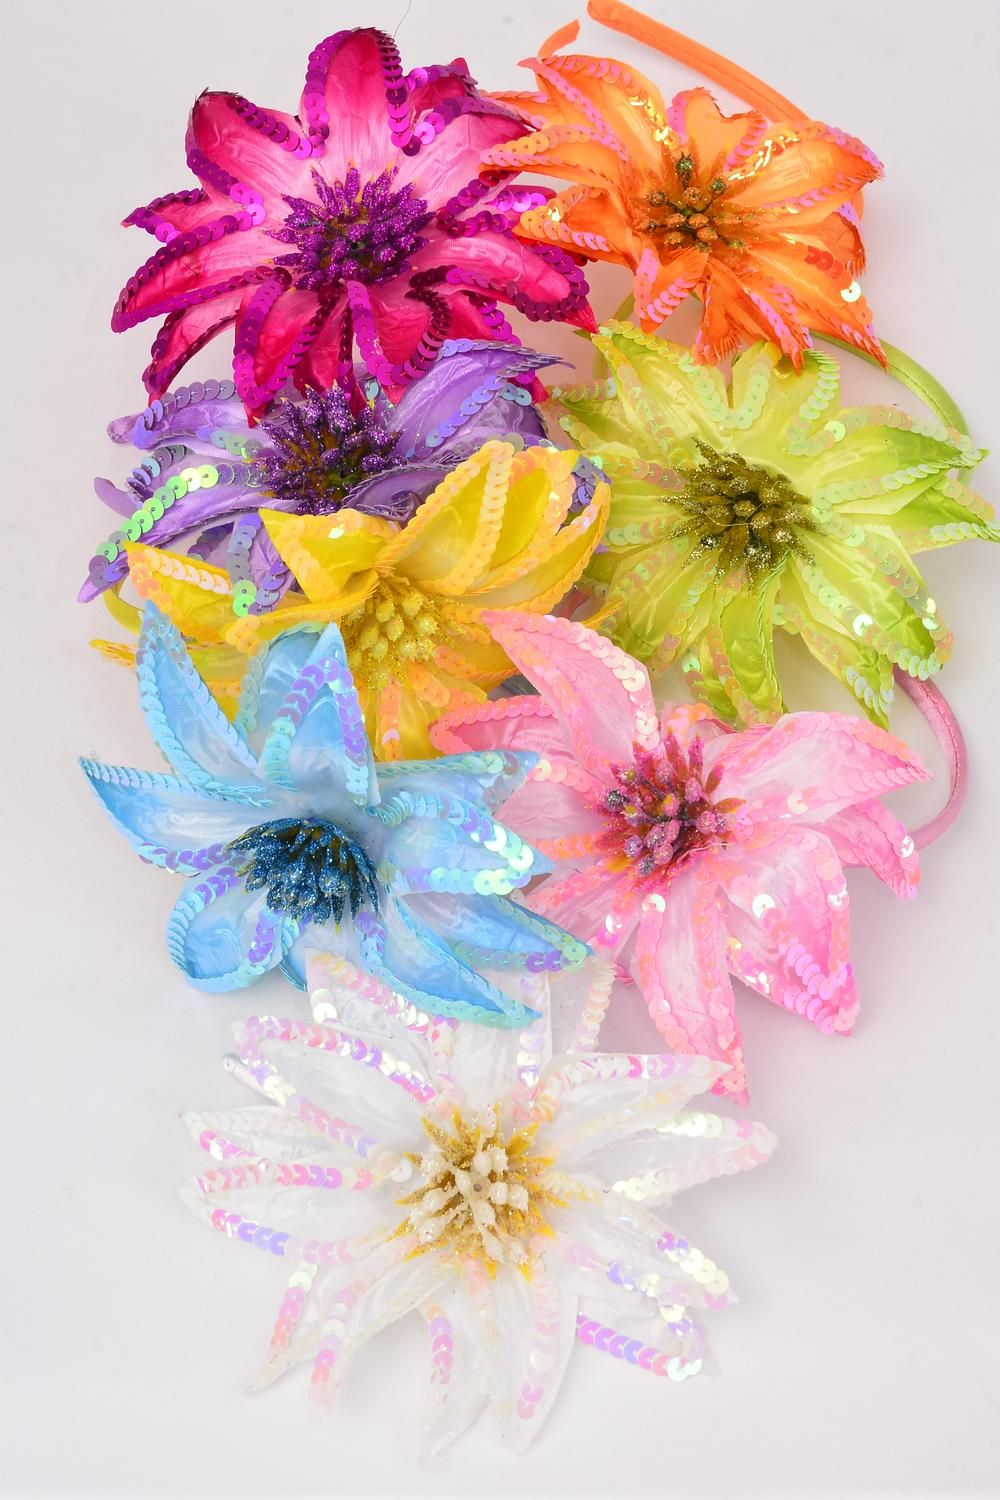 "Headband Horseshoe Satin Large Sequin Flower/DZ Flower-5"" Wide,2 Pink,2 Blue,2 Purple,2 Fuchsia,1 Orange,1 Lime,1 Yellow,1 White,8 Color Asst,Hang tag & UPC code,W Clear Box -"